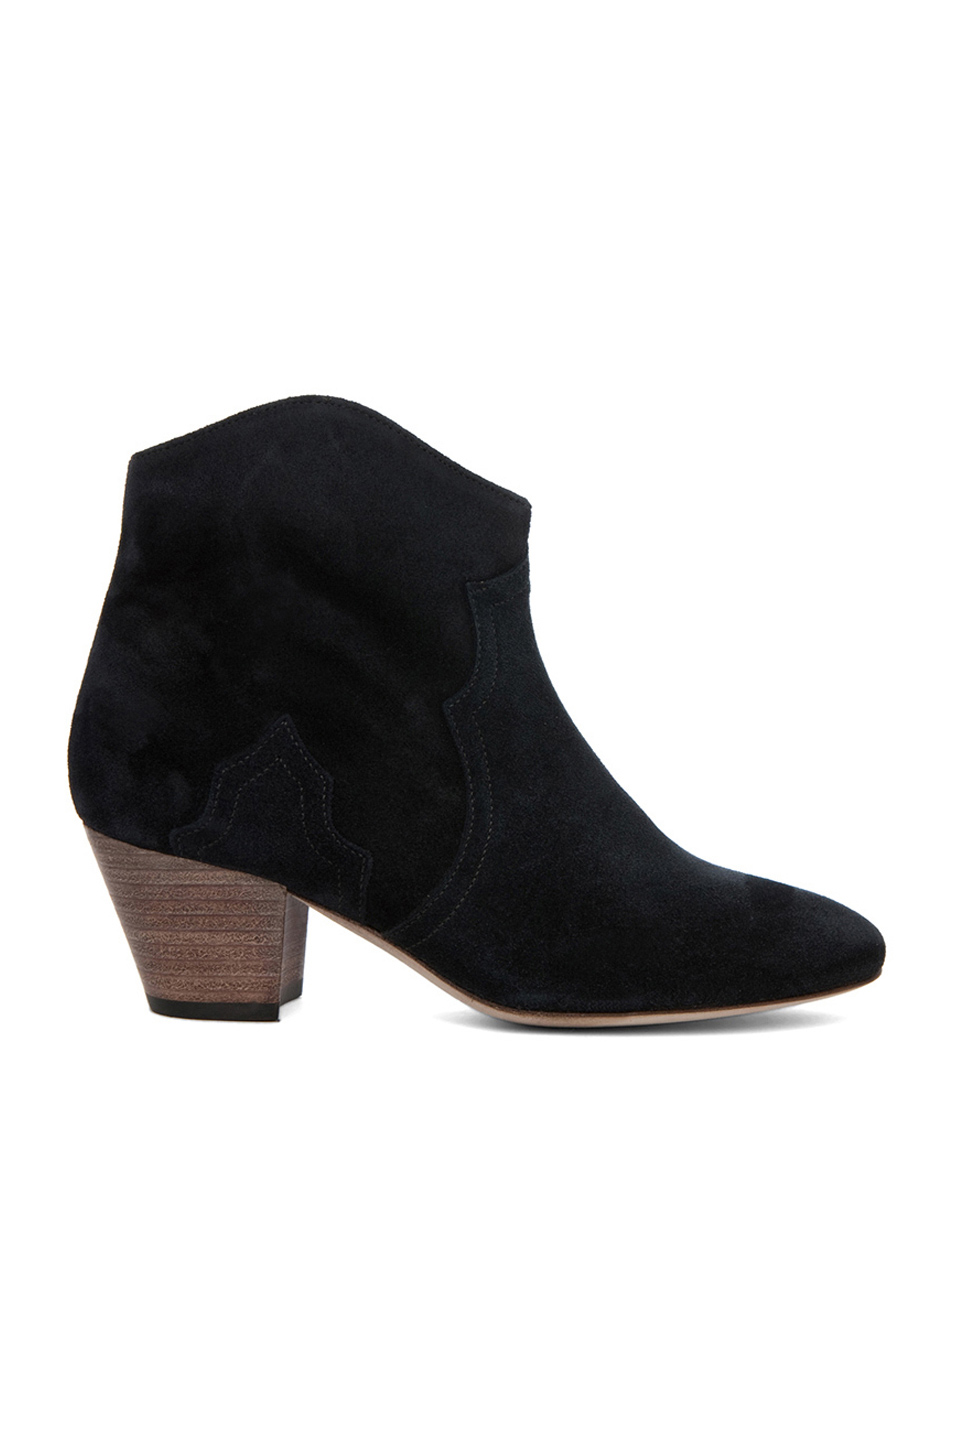 Isabel Marant Dicker Calfskin Velvet Leather Booties in Black